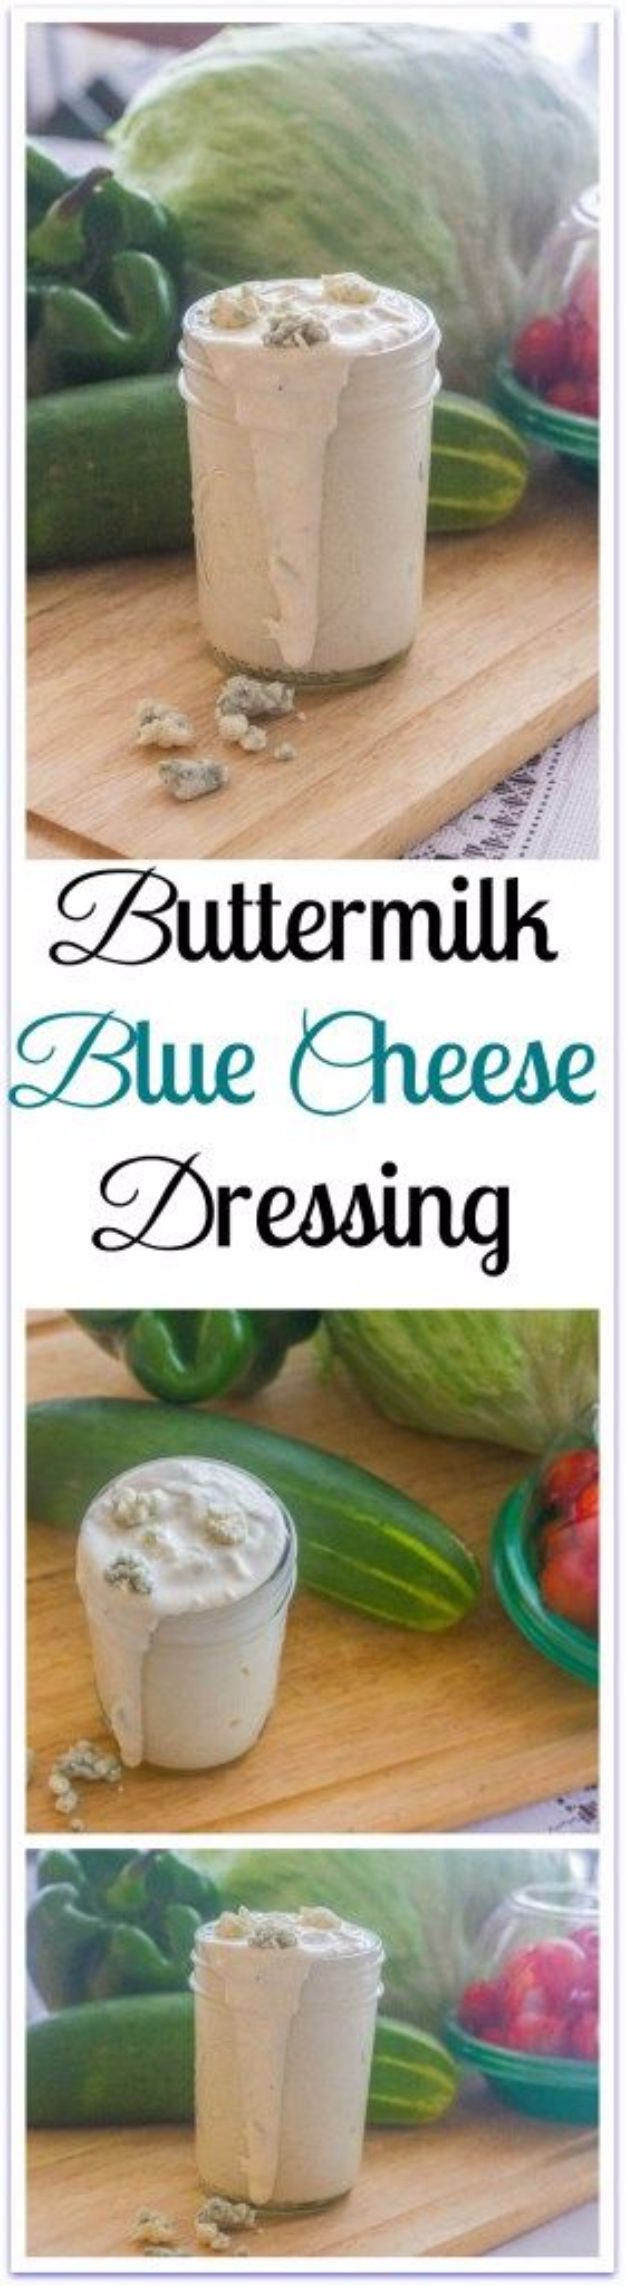 Salad Dressing Recipes - Buttermilk Blue Cheese Dressing - Healthy, Low Calorie and Easy Recipes for Creamy Homeade Dressings - How To Make Vinaigrette, Mango, Greek, Paleo, Balsamic, Ranch, and Italian Copycat Dressings